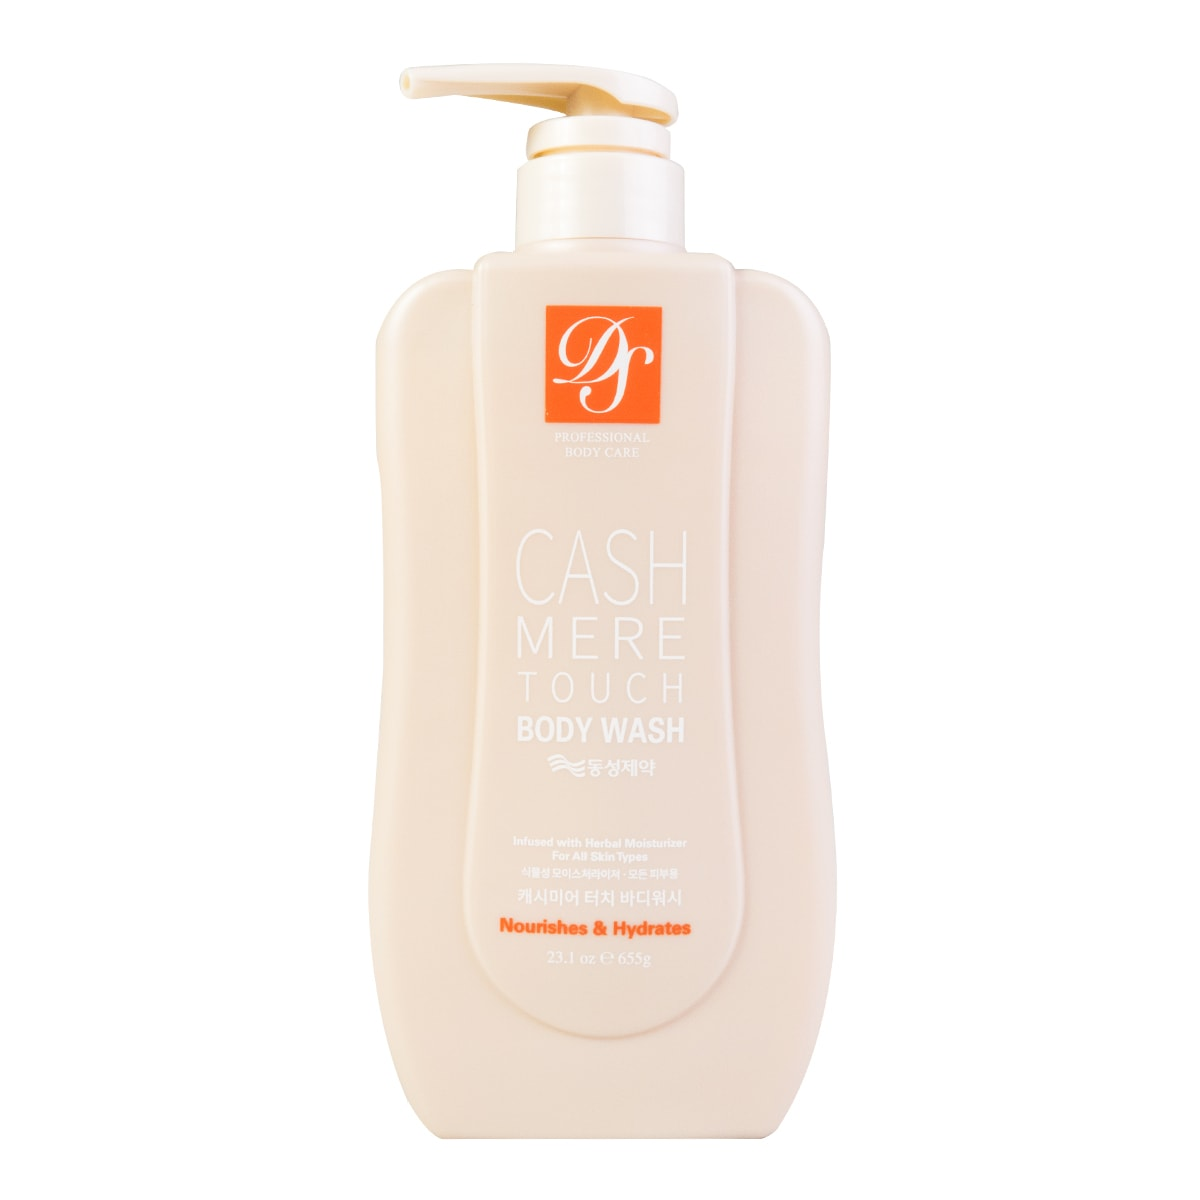 Yamibuy.com:Customer reviews:DS Cashmere Touch Body Wash Nourishes & Hydrates 655g